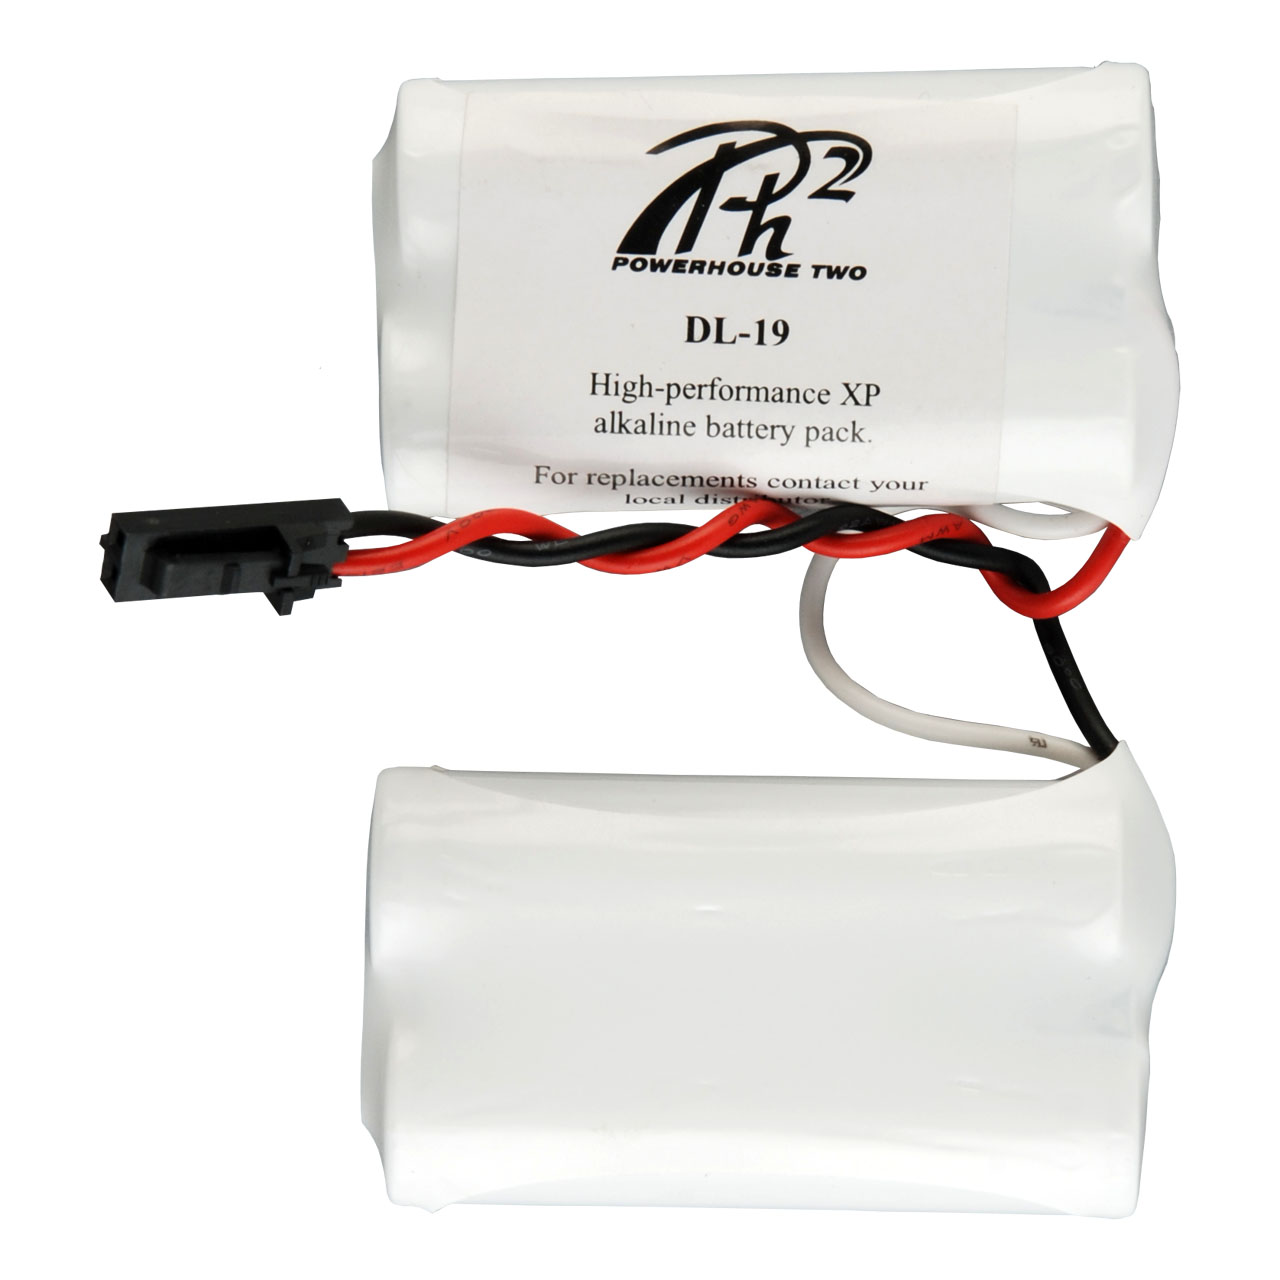 DL-19 Hospitality Battery Pack